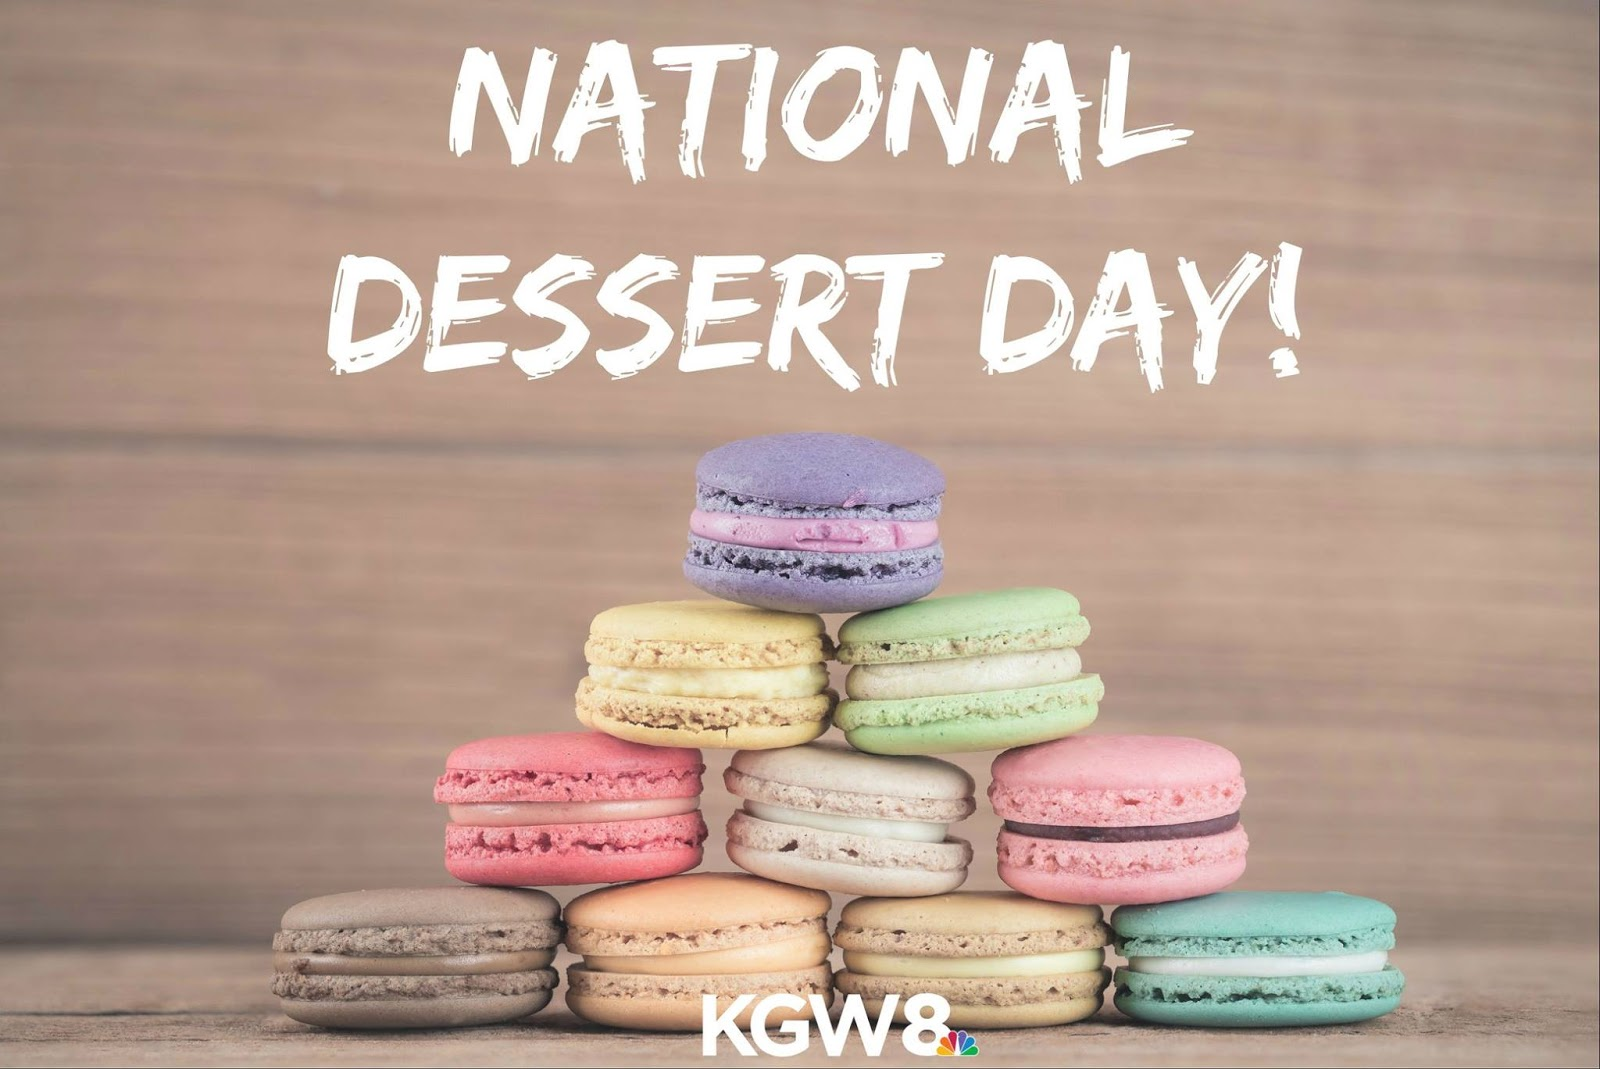 National Dessert Day Wishes Awesome Picture